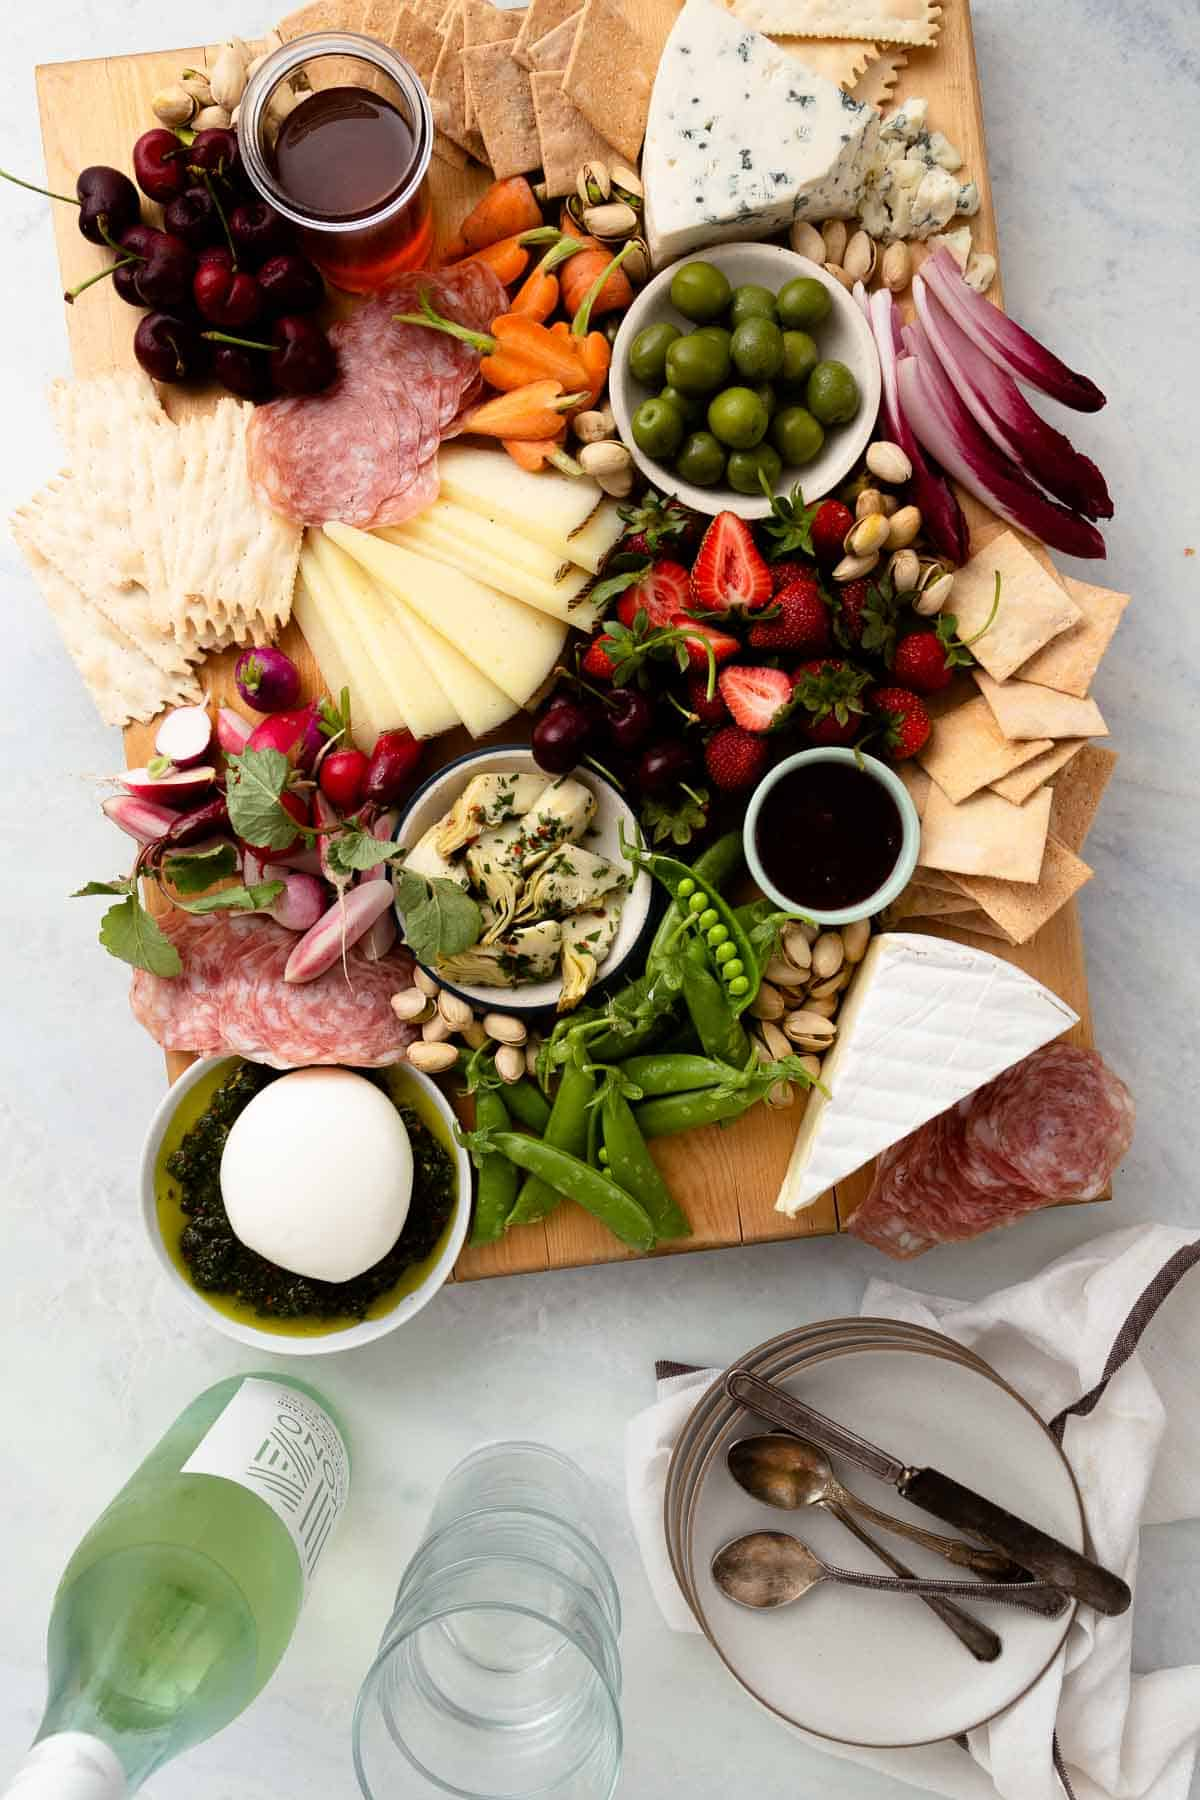 large wood board filled with crackers, cheese, meat, vegetables, and fruit